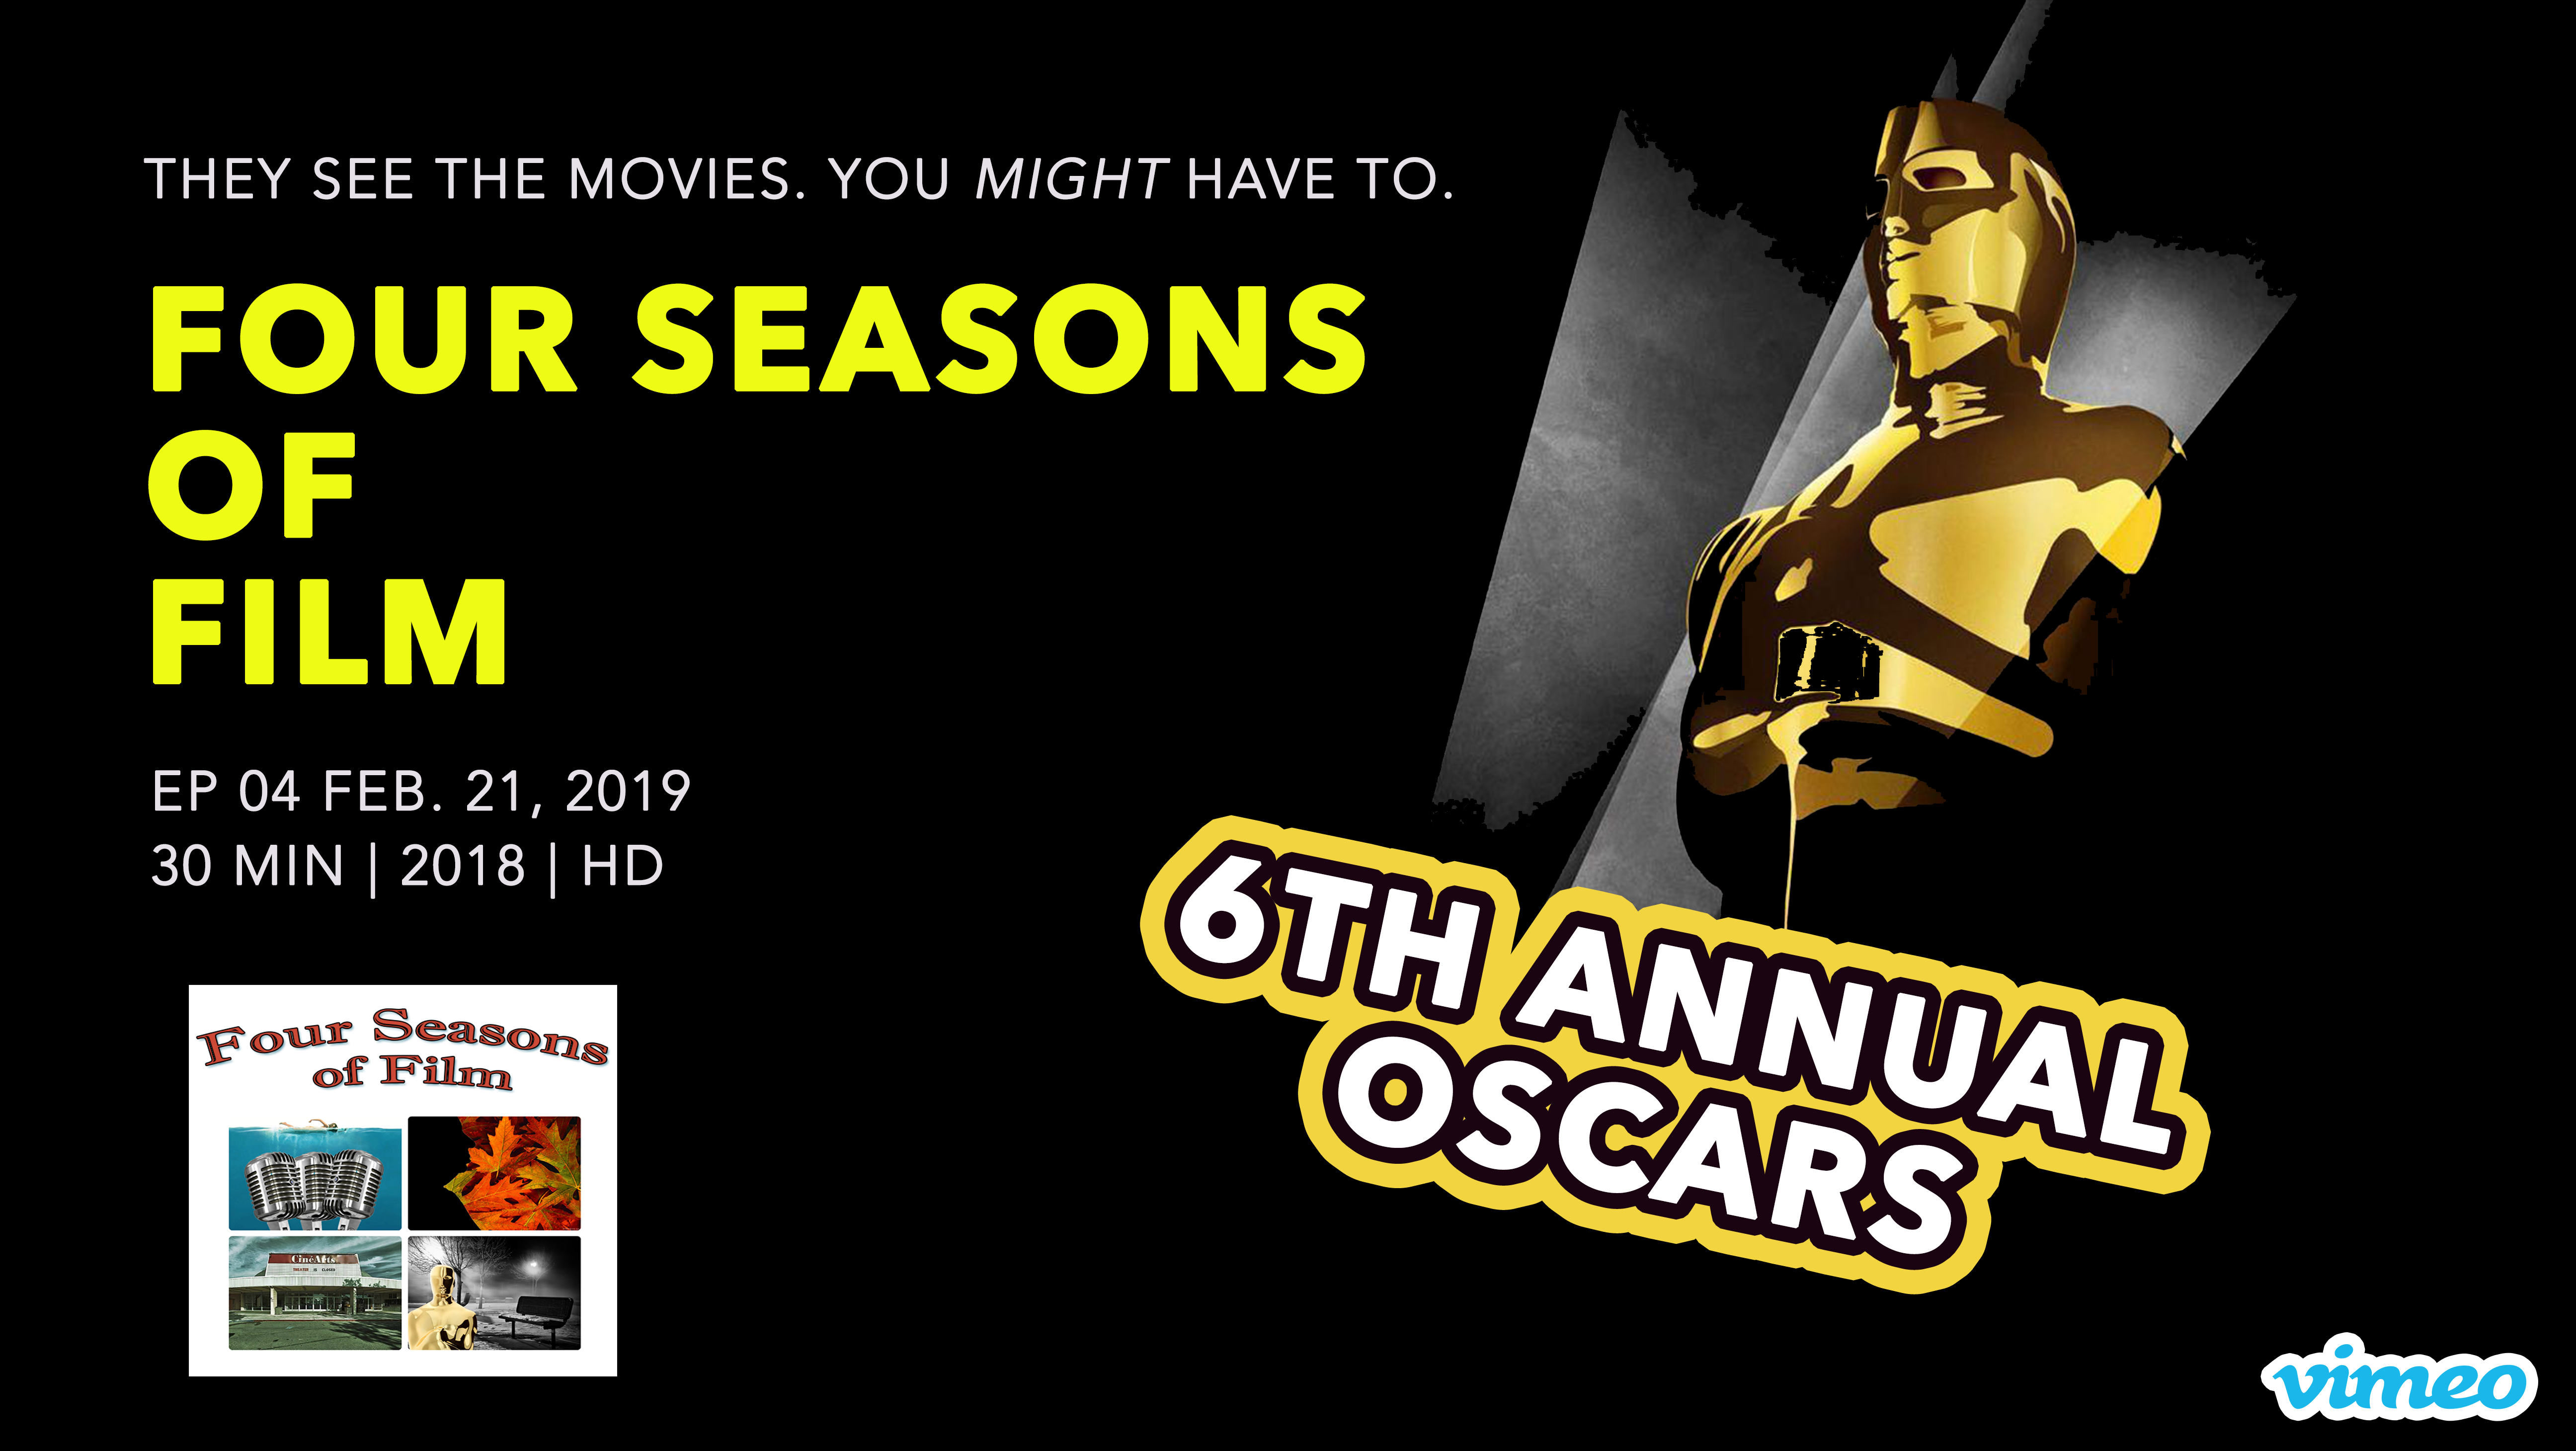 Artwork for 6th Annual Oscars | Four Seasons of Film TV | VIDEO | Ep. 04